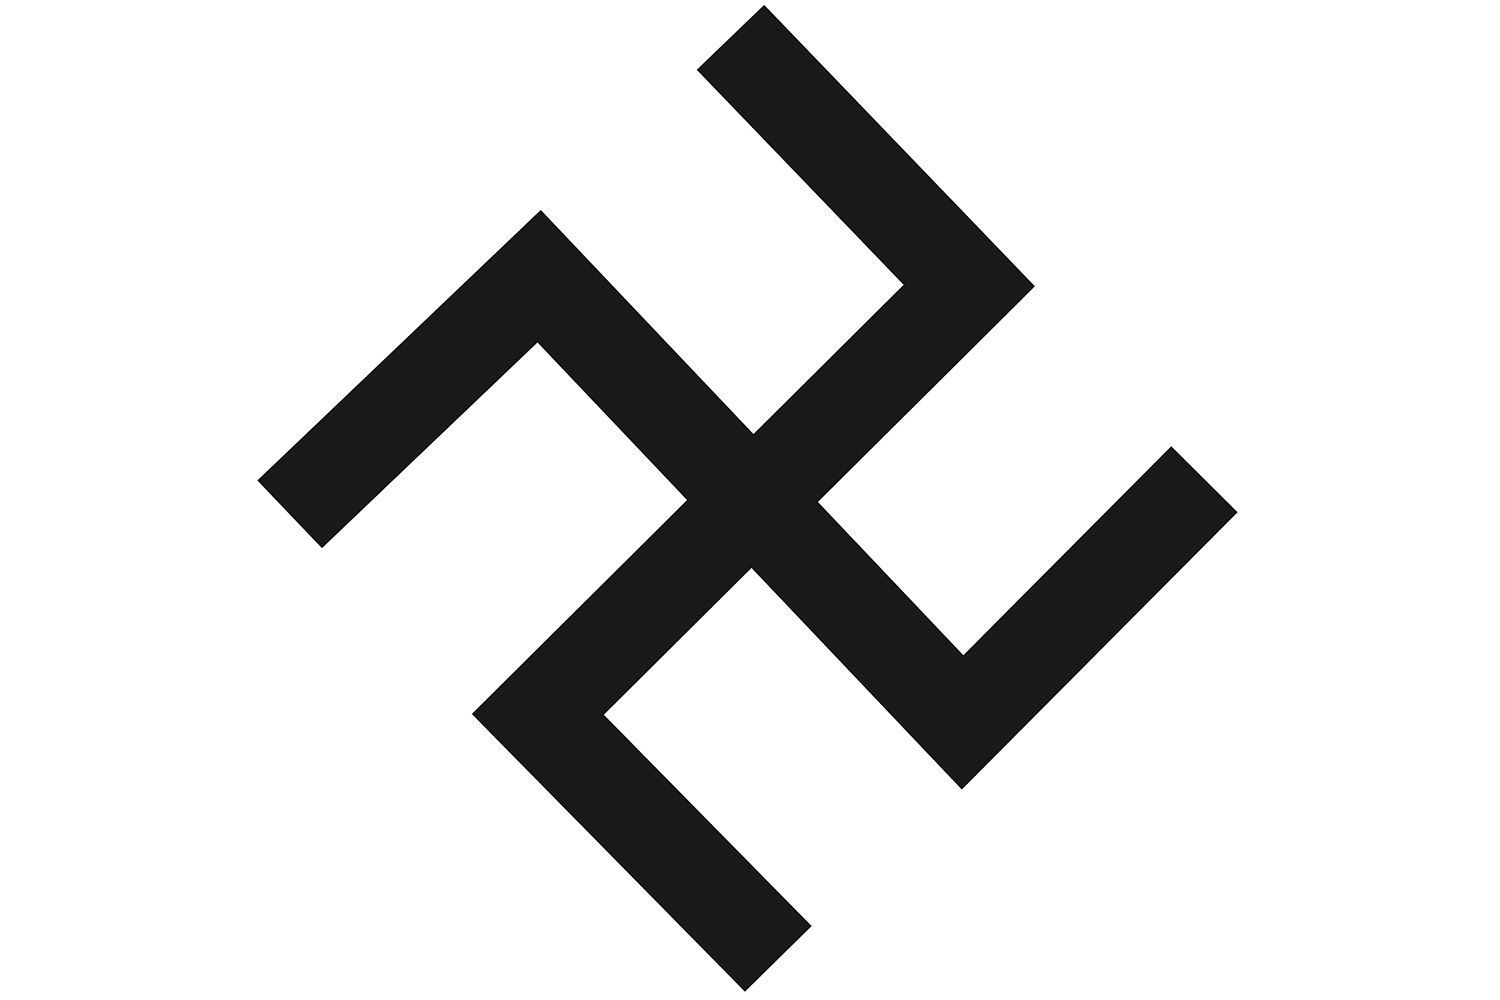 What is the origin of the swastika get the history of the swastika the oldest known symbol used by nazis buycottarizona